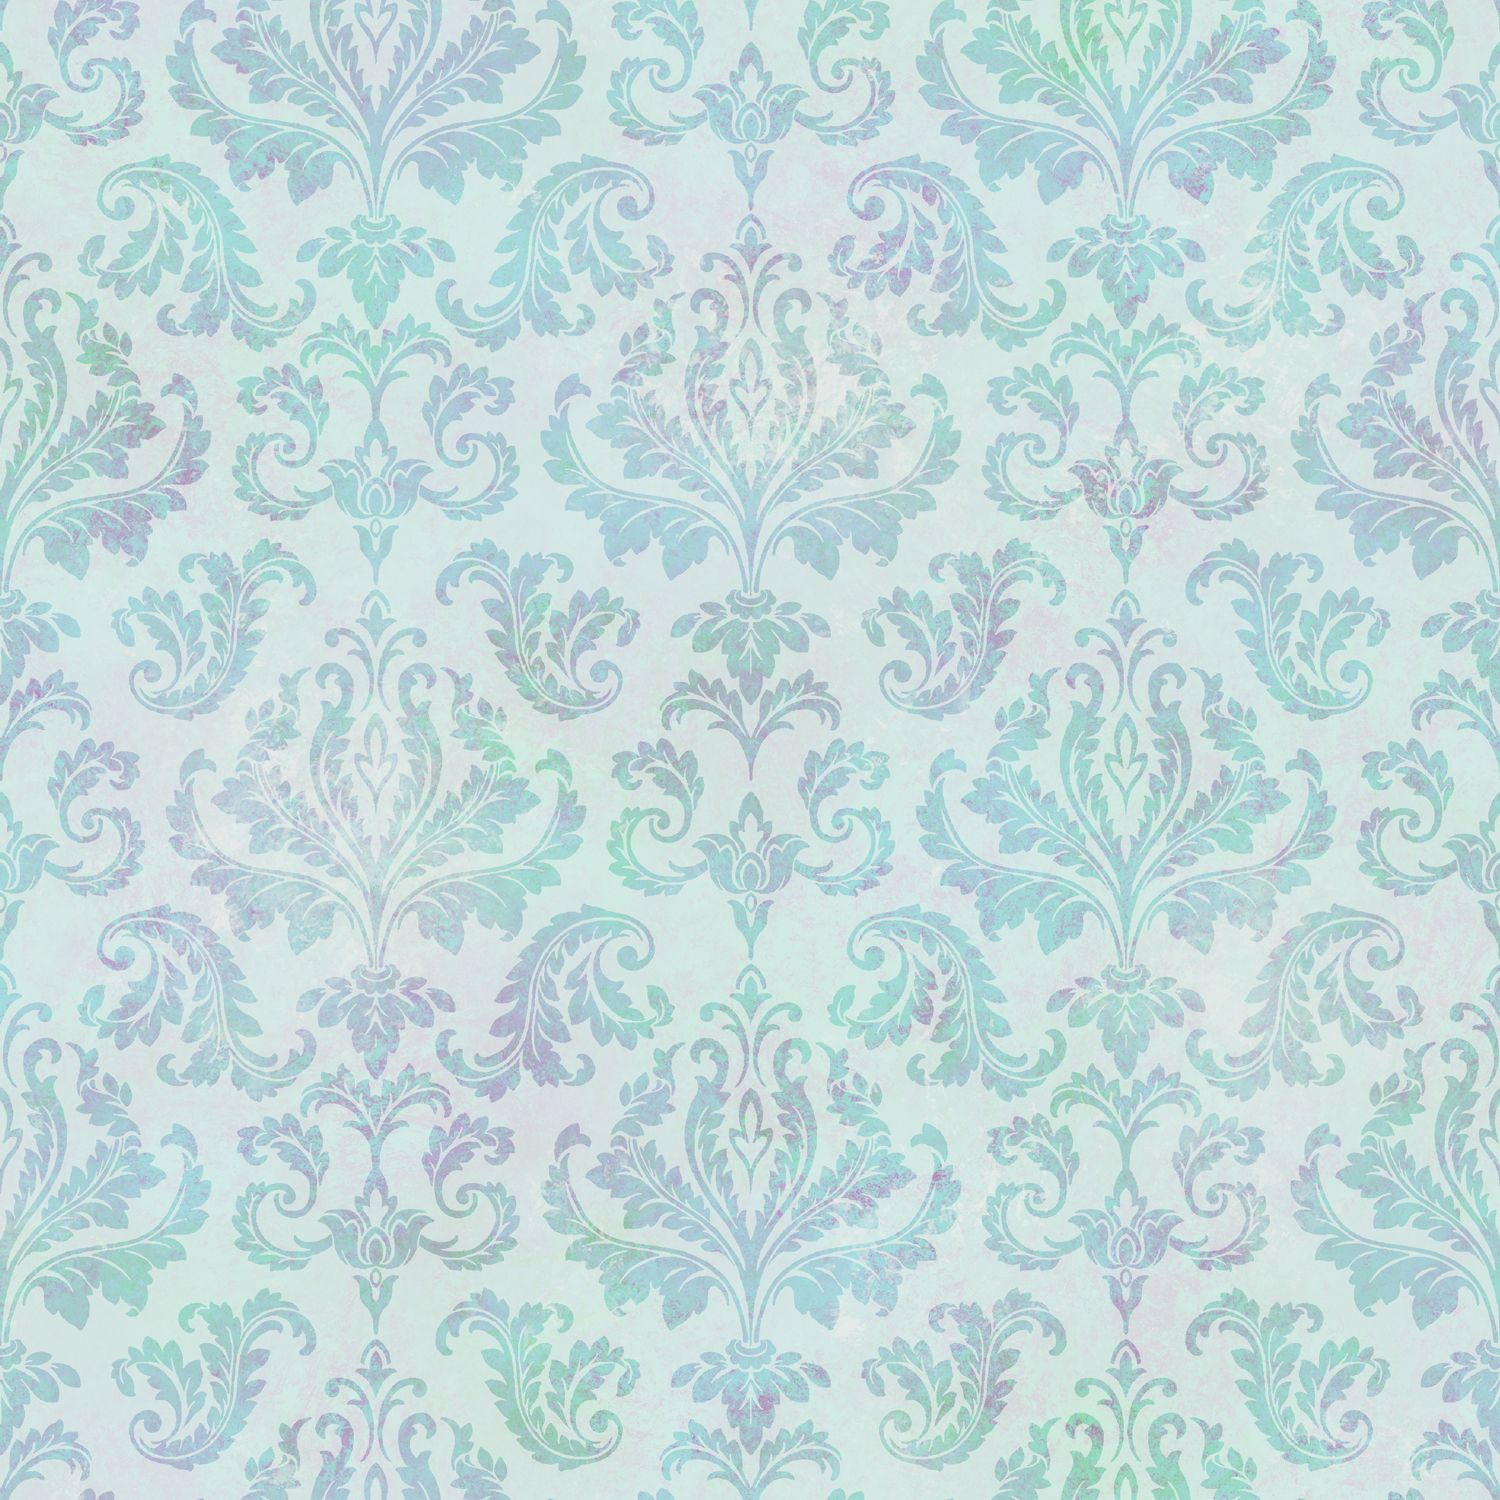 Frozen inspired bedroom - Another Wallpaper For Frozen Inspired Bedroom Totally For Kids Tie Dye Damask Tot47141 By Brewster